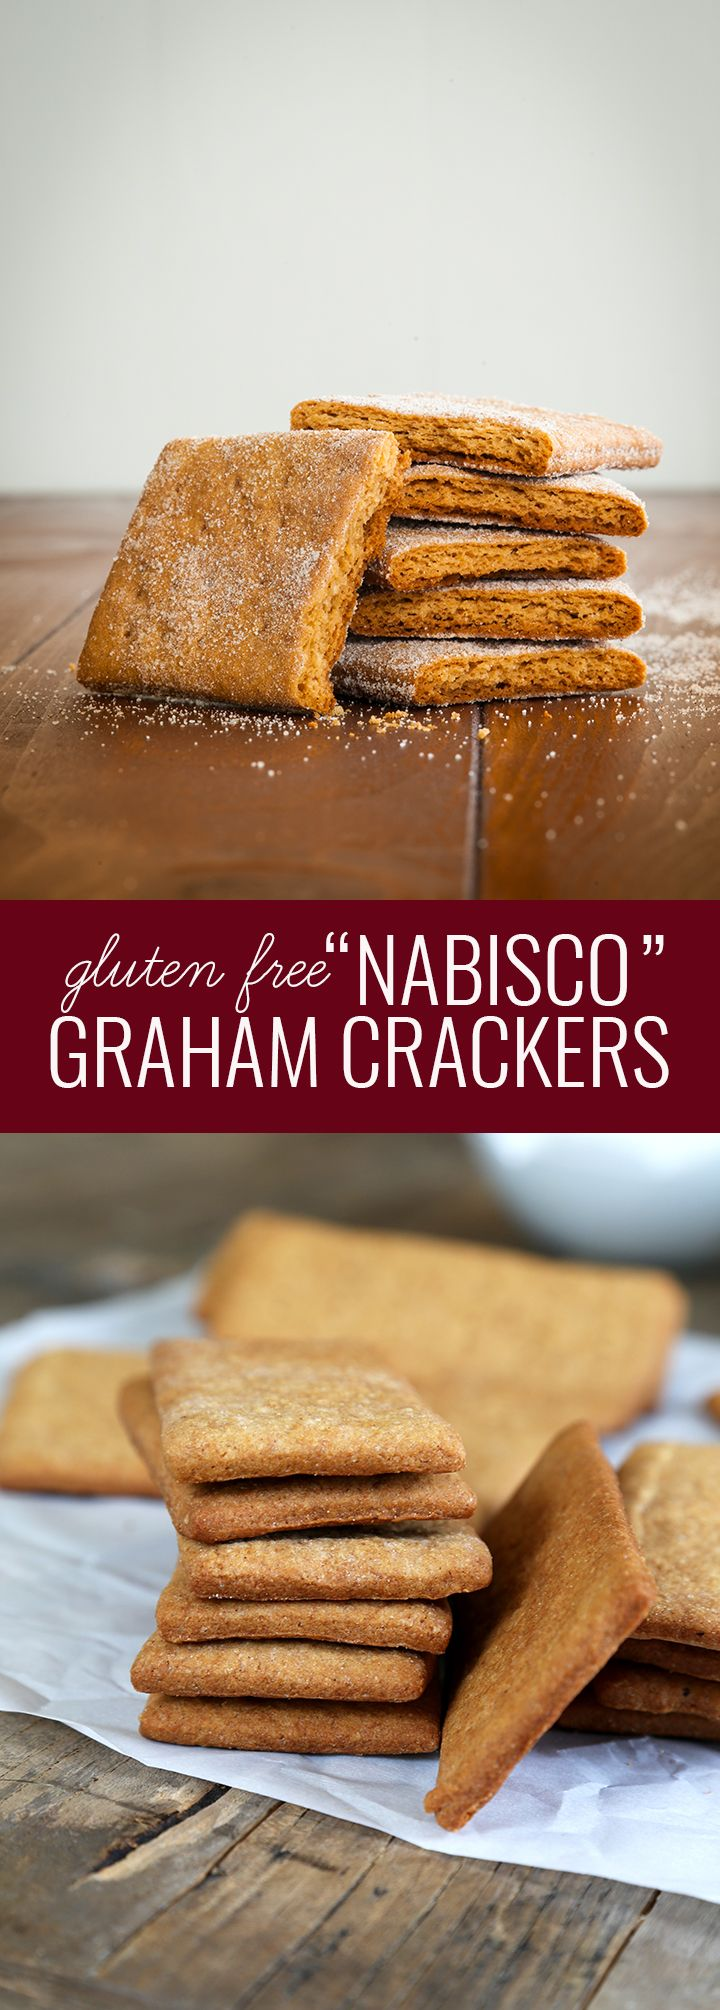 "Gluten Free Nabisco Graham Crackers. Just like the ""real thing""!"